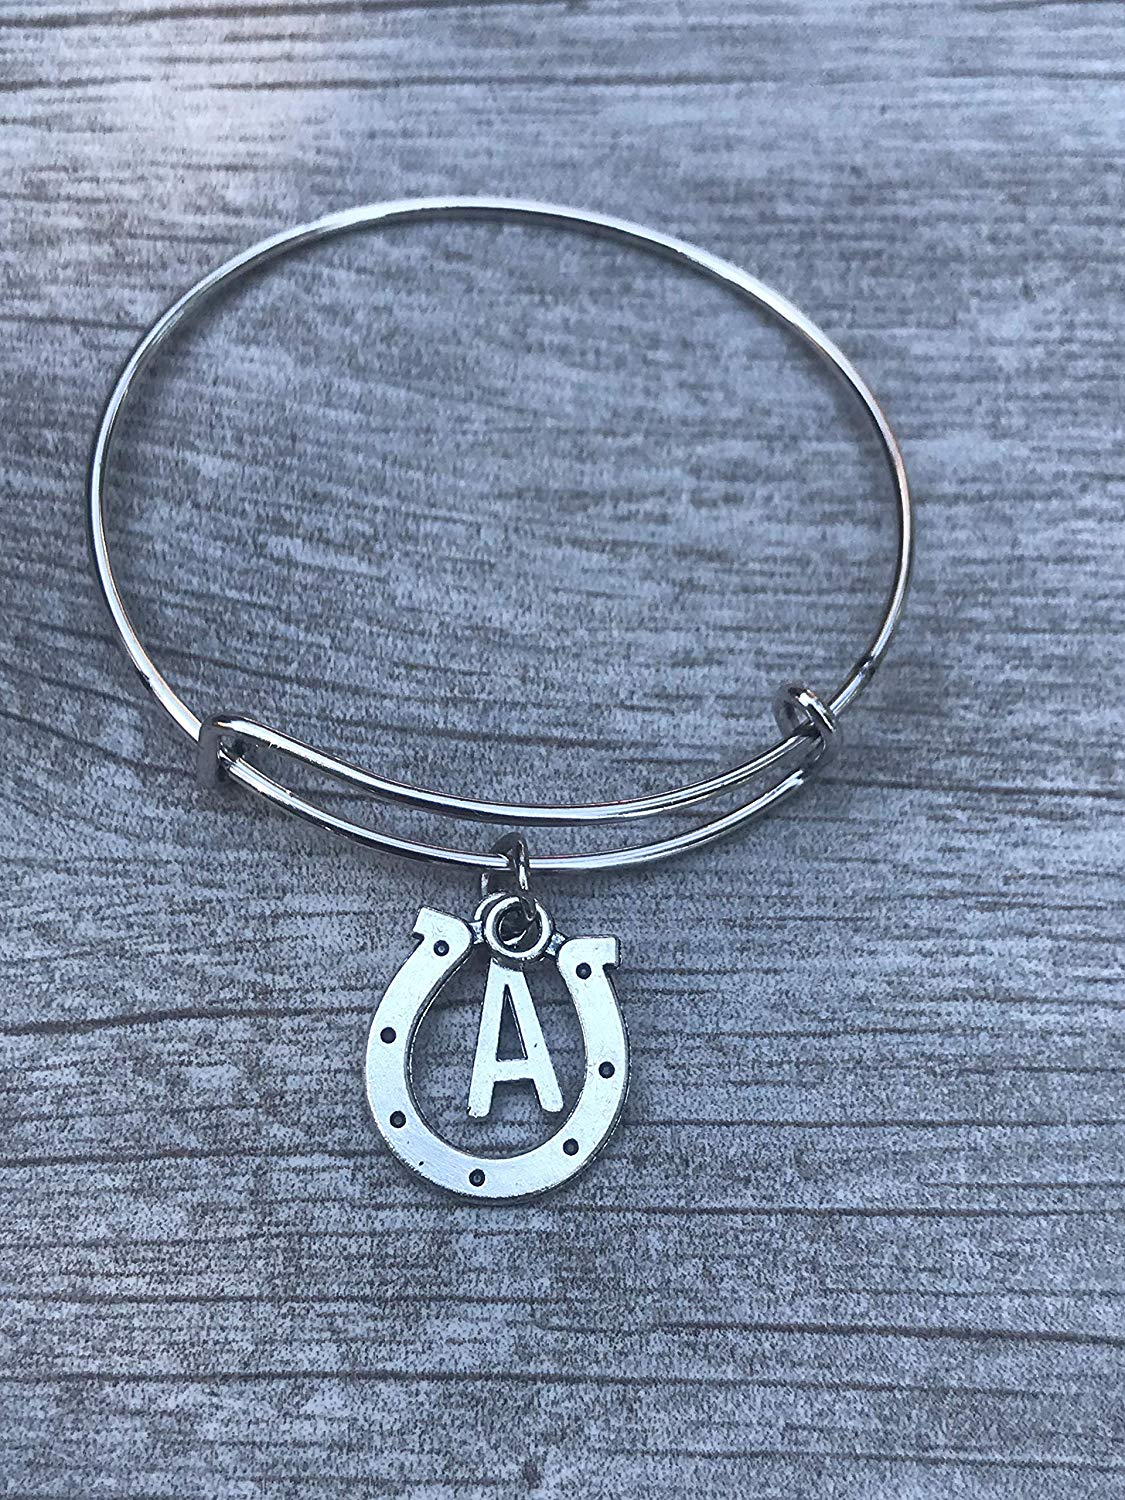 dc8294f07d46b2 Get Quotations · Personalized Equestrian Charm Bracelet with Initial Charm,  Customized Horse Lovers Jewelry for Women and Girls